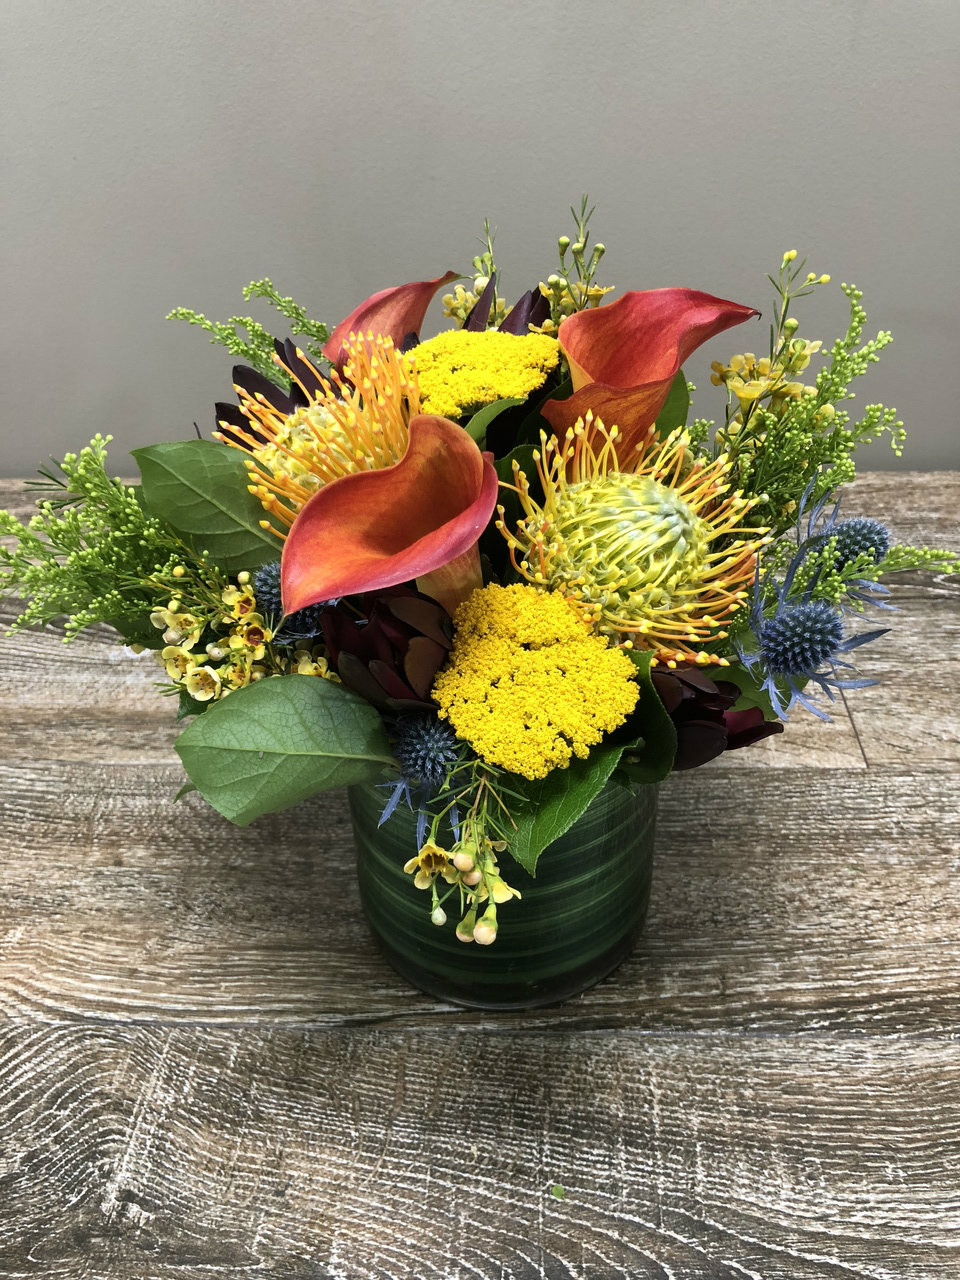 Cool Nights Rockville Md Palace Florists